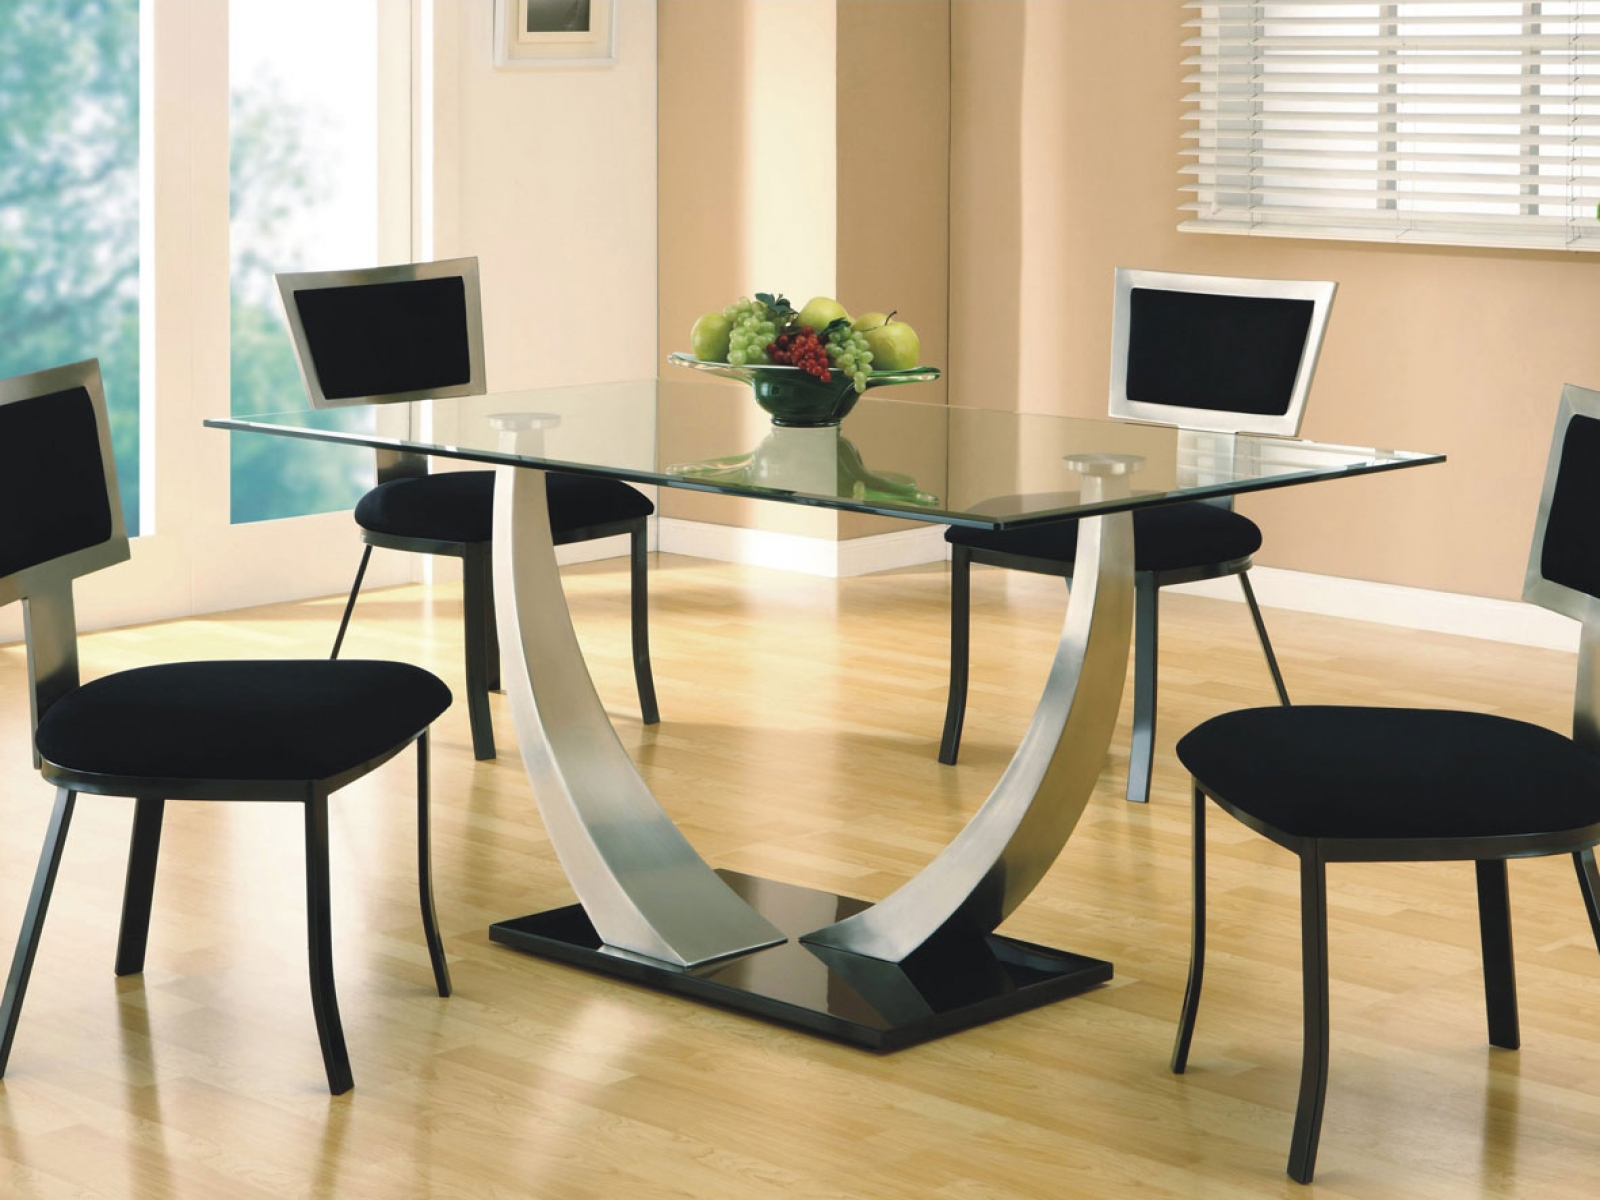 Square dining table design for your home d cor for Square dining table designs